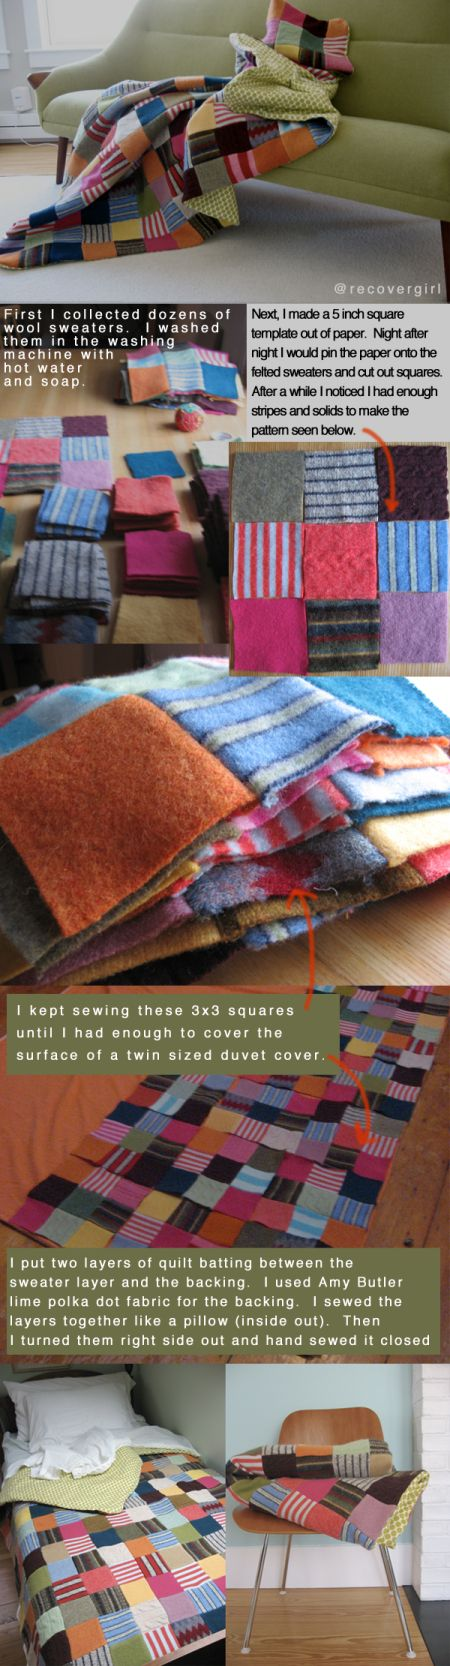 recovergirl-sweater-blanket-how-to1.jpg (450×1666)